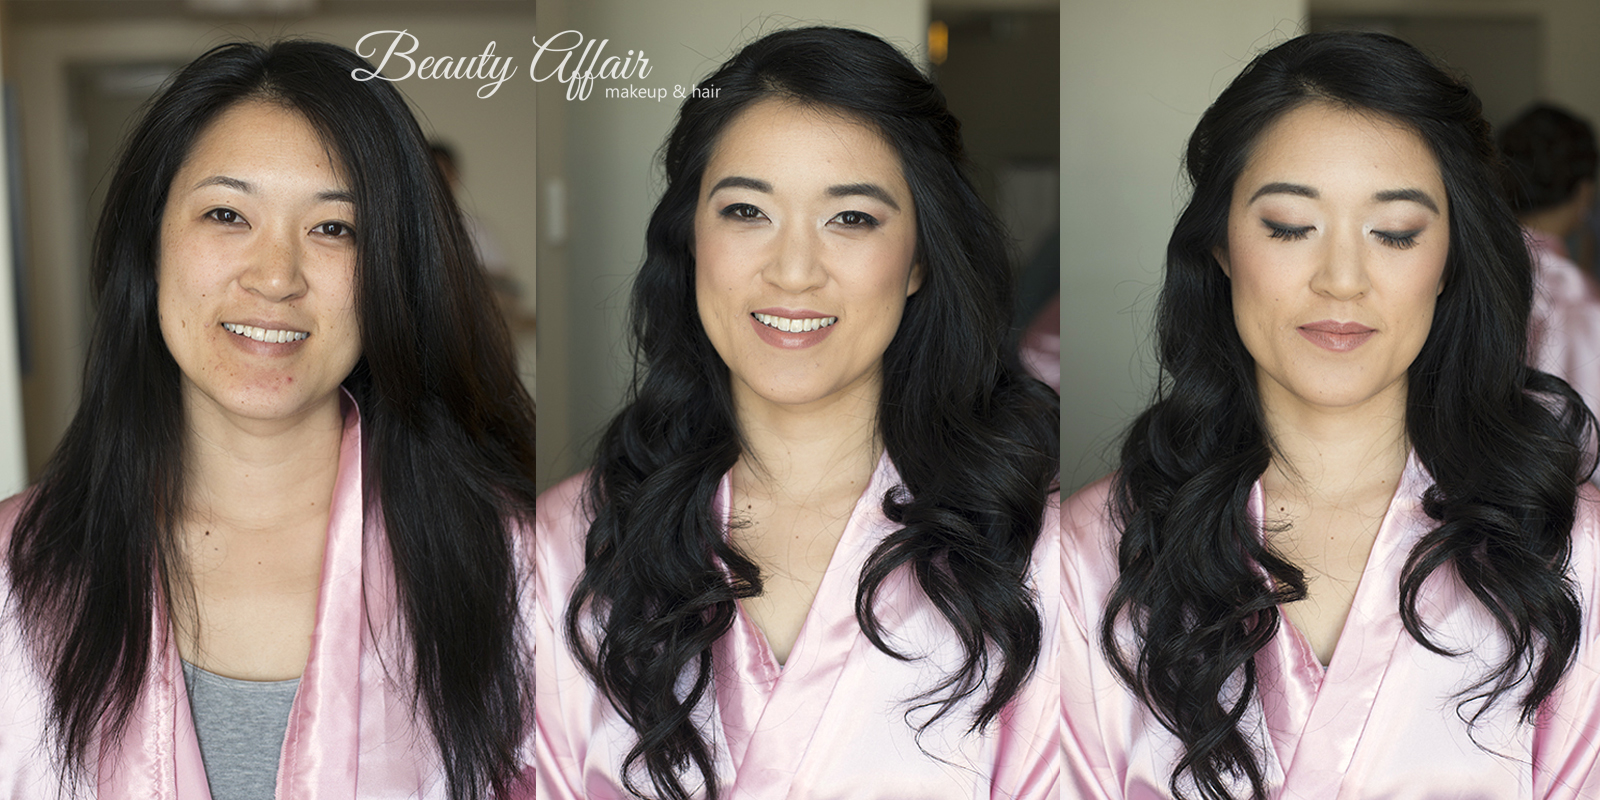 Bridal makeup artist hair stylist Los Angeles